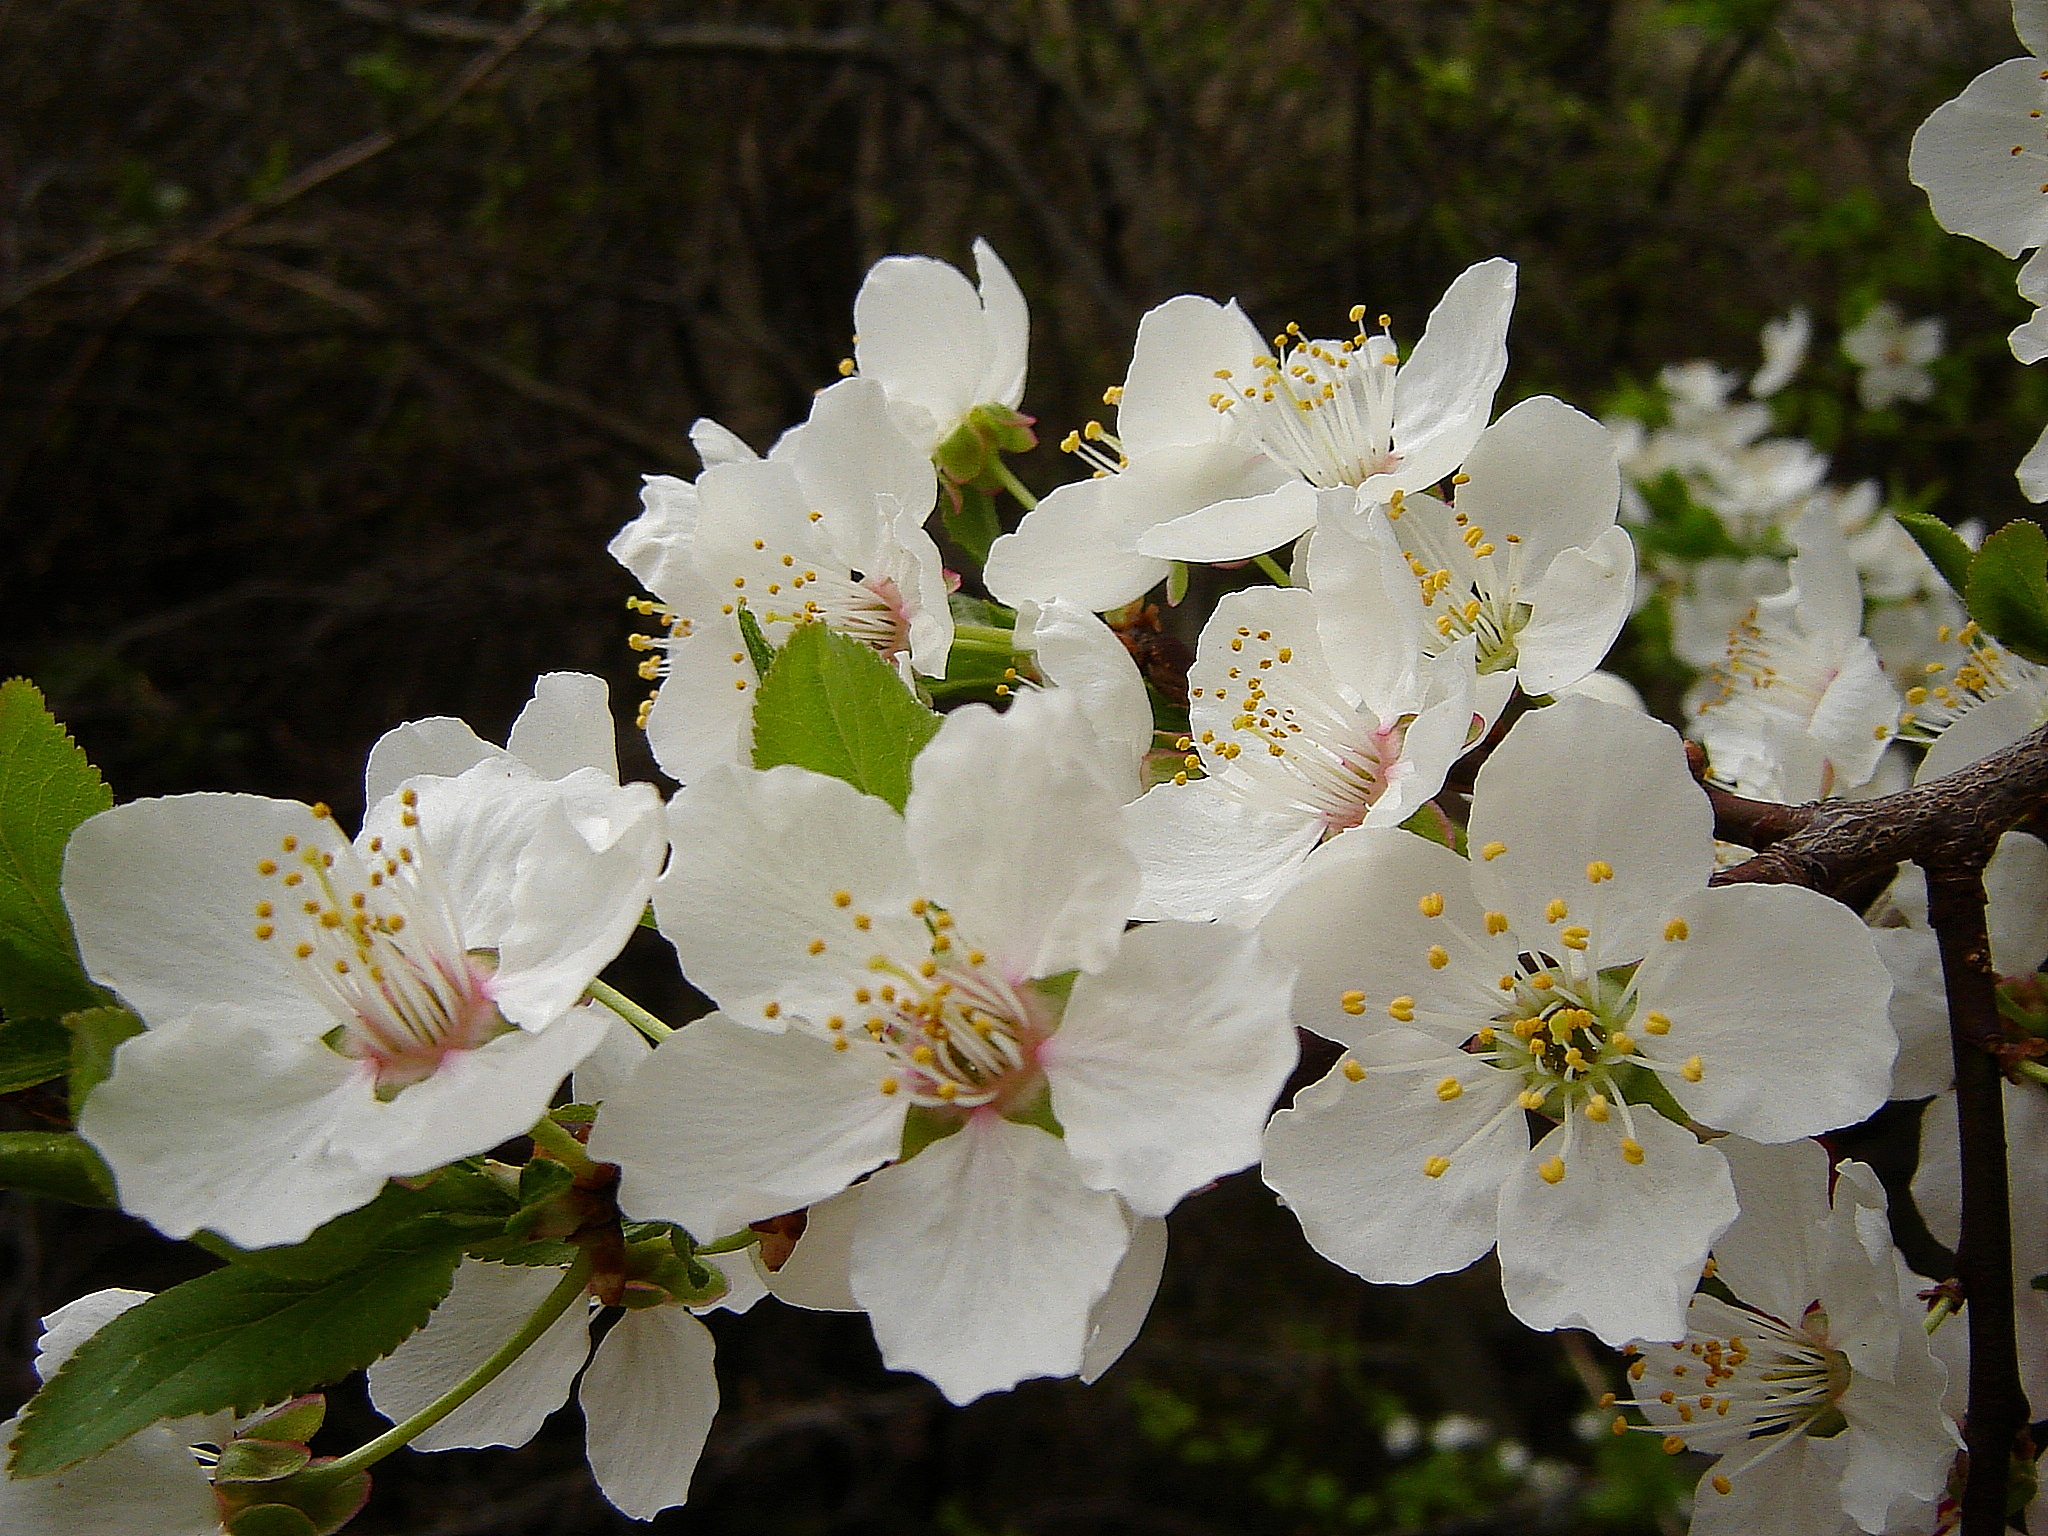 Plum tree in bloom photo